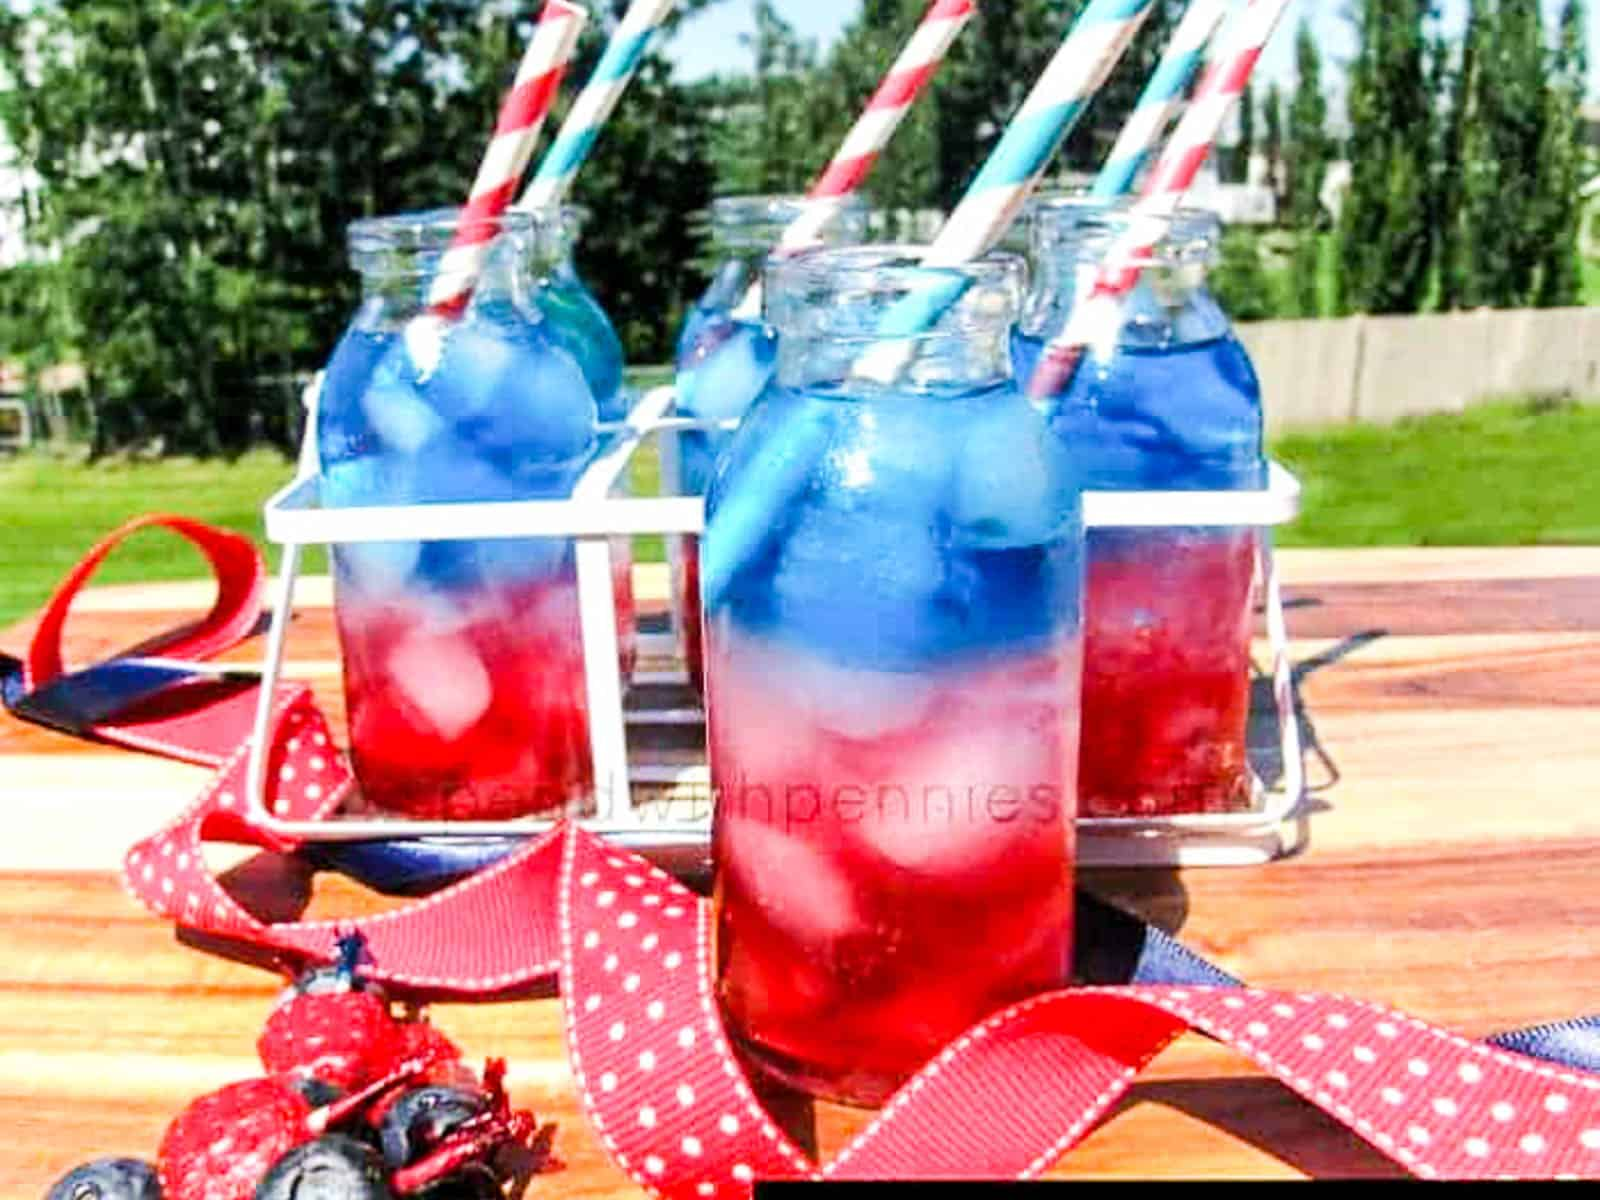 Four glasses of red white and blue drinks with straws at a July 4th party.